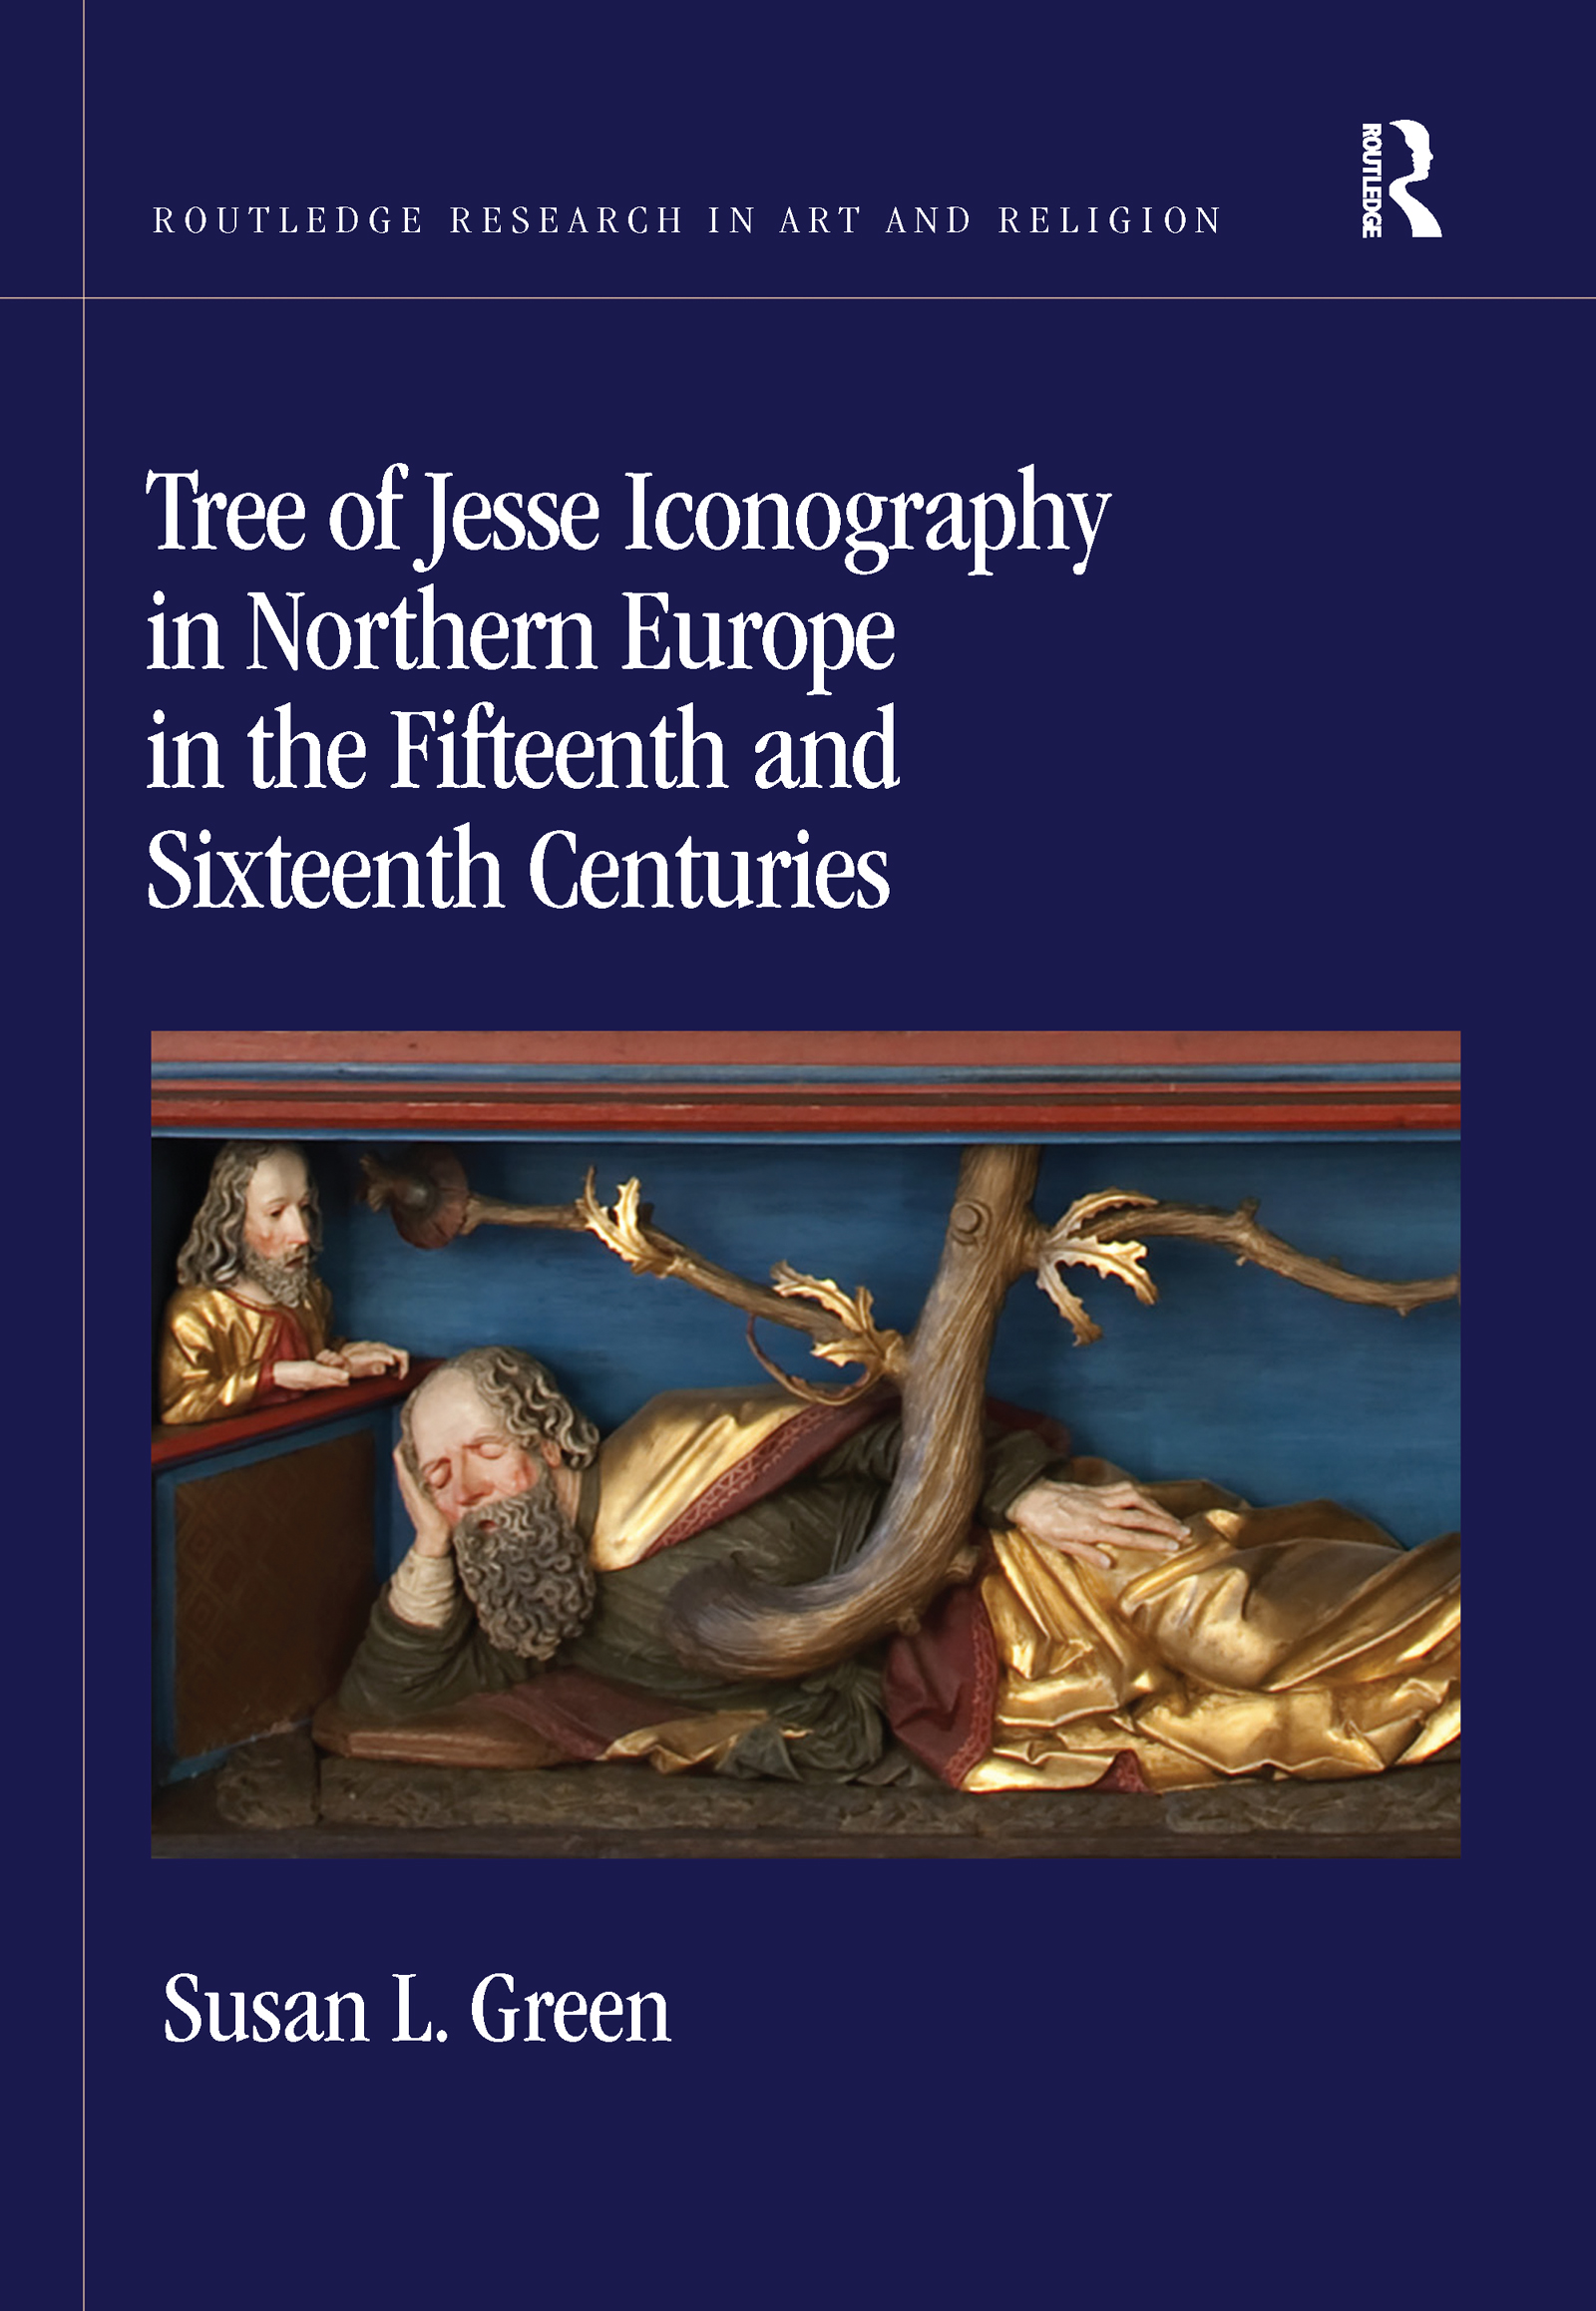 Tree of Jesse Iconography in Northern Europe in the Fifteenth and Sixteenth Centuries